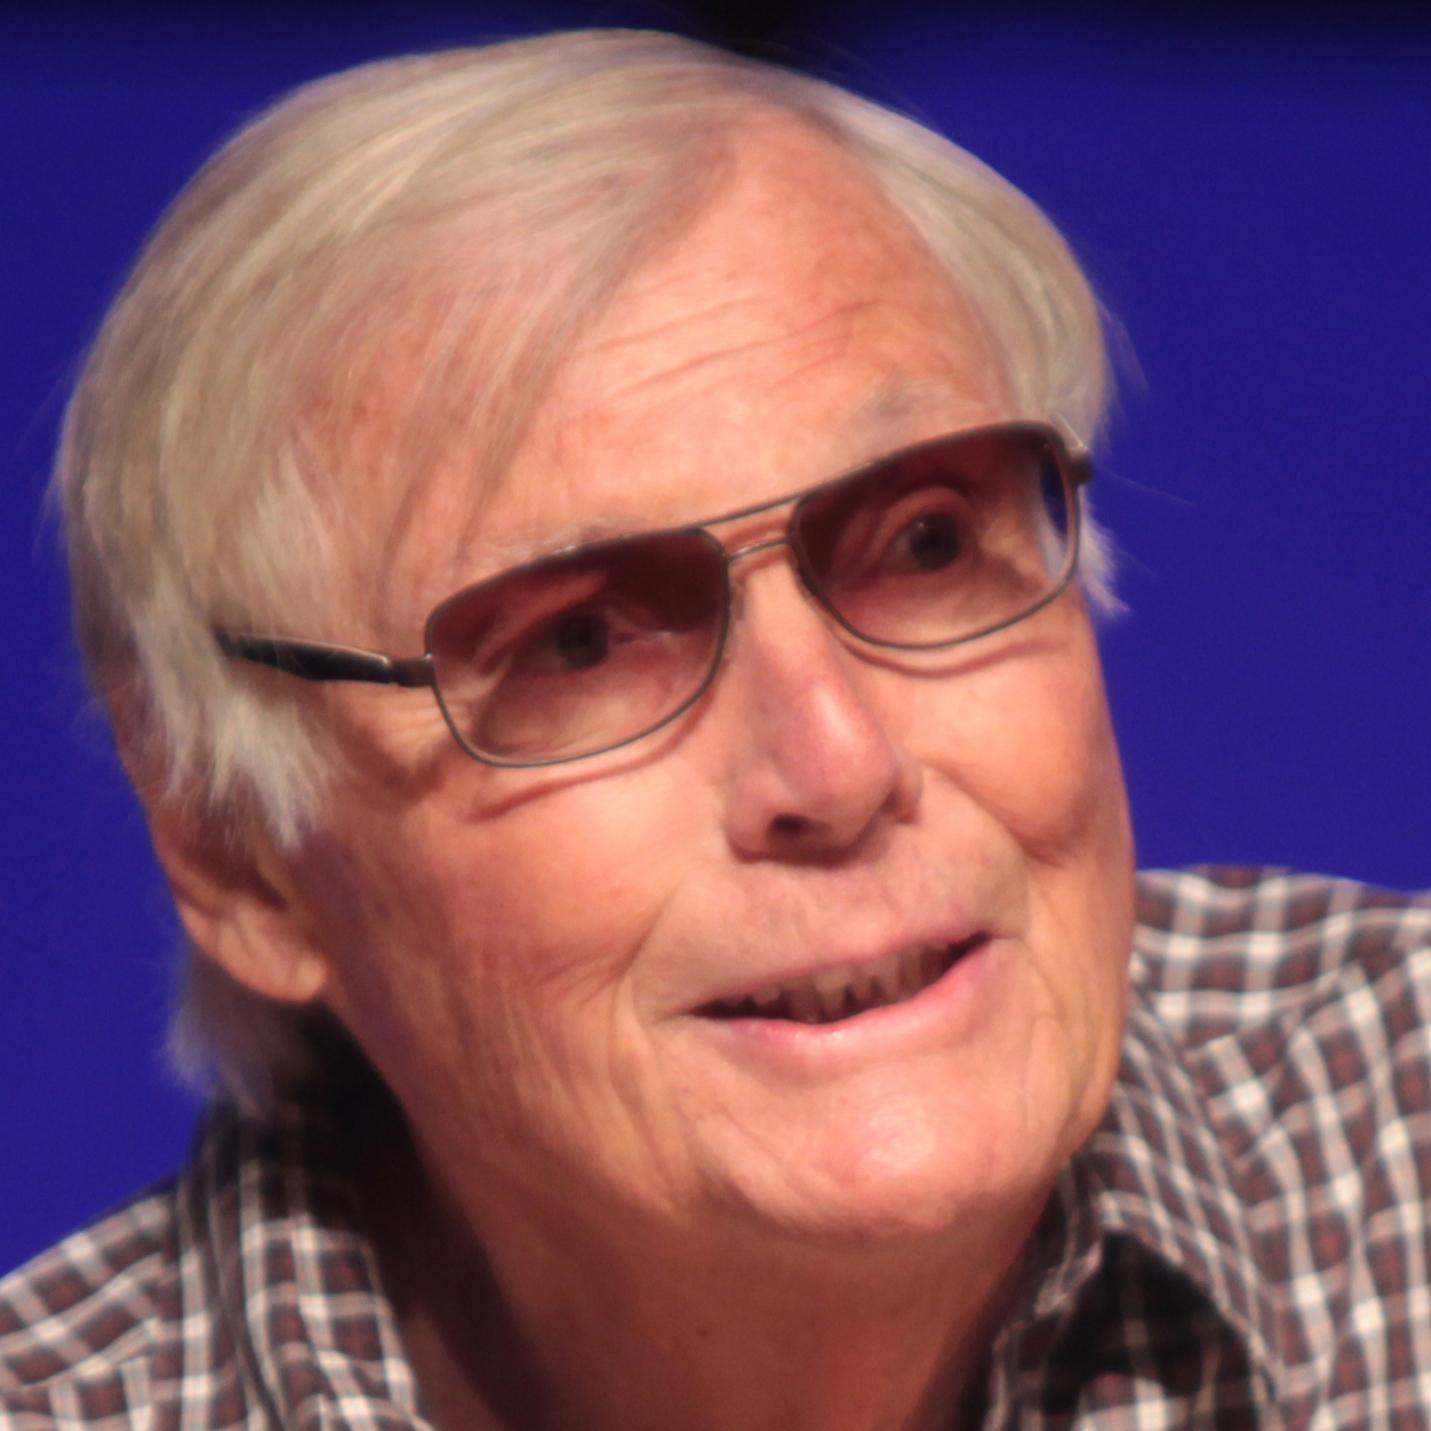 Adam West Bio, Net Worth, Facts